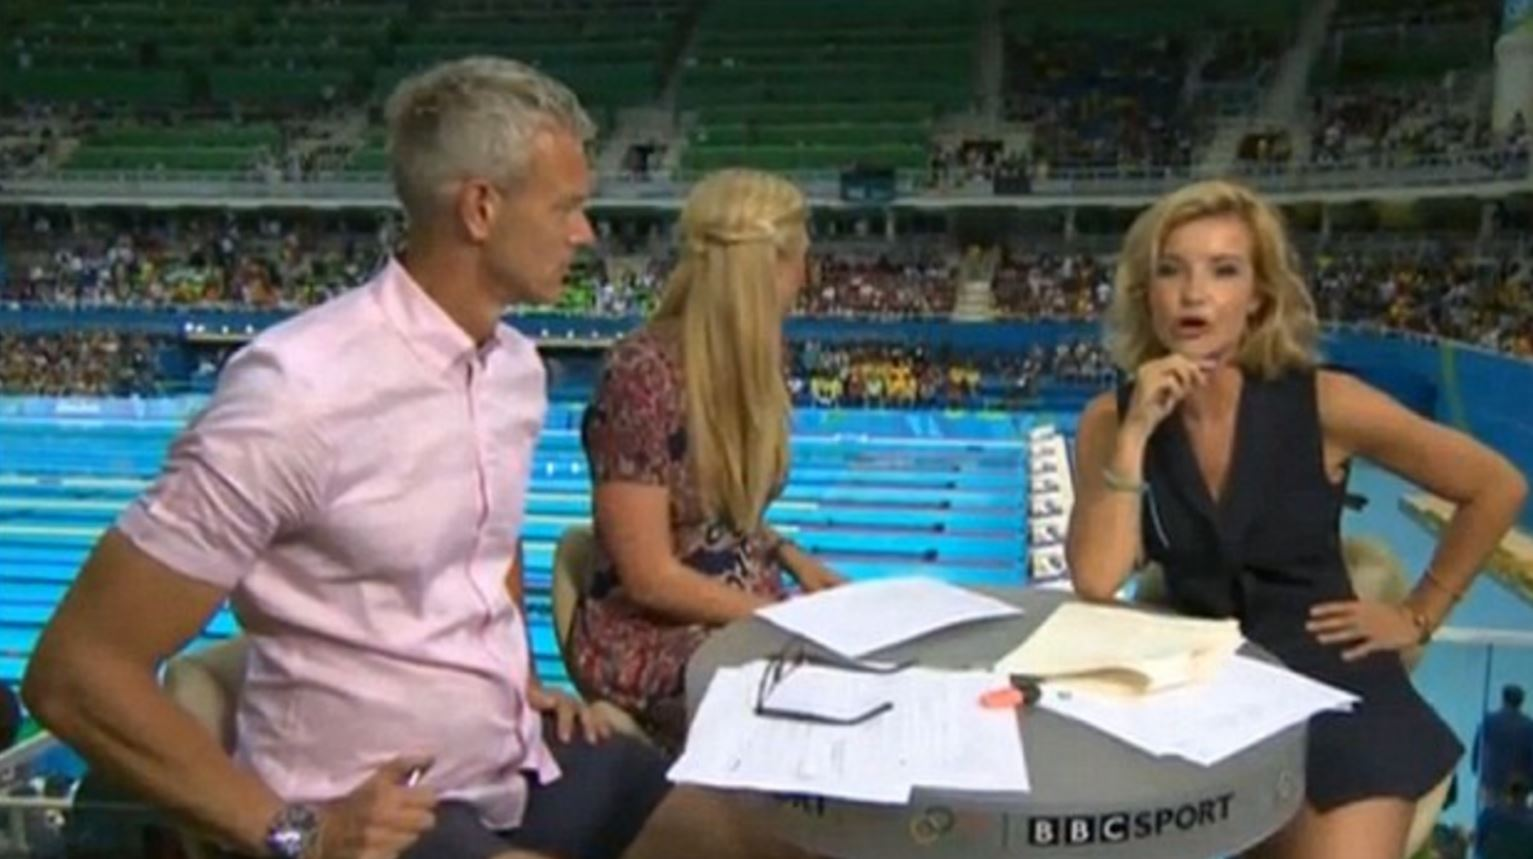 Helen Skelton proves sexism is alive and well while hosting the BBC's Olympics coverage